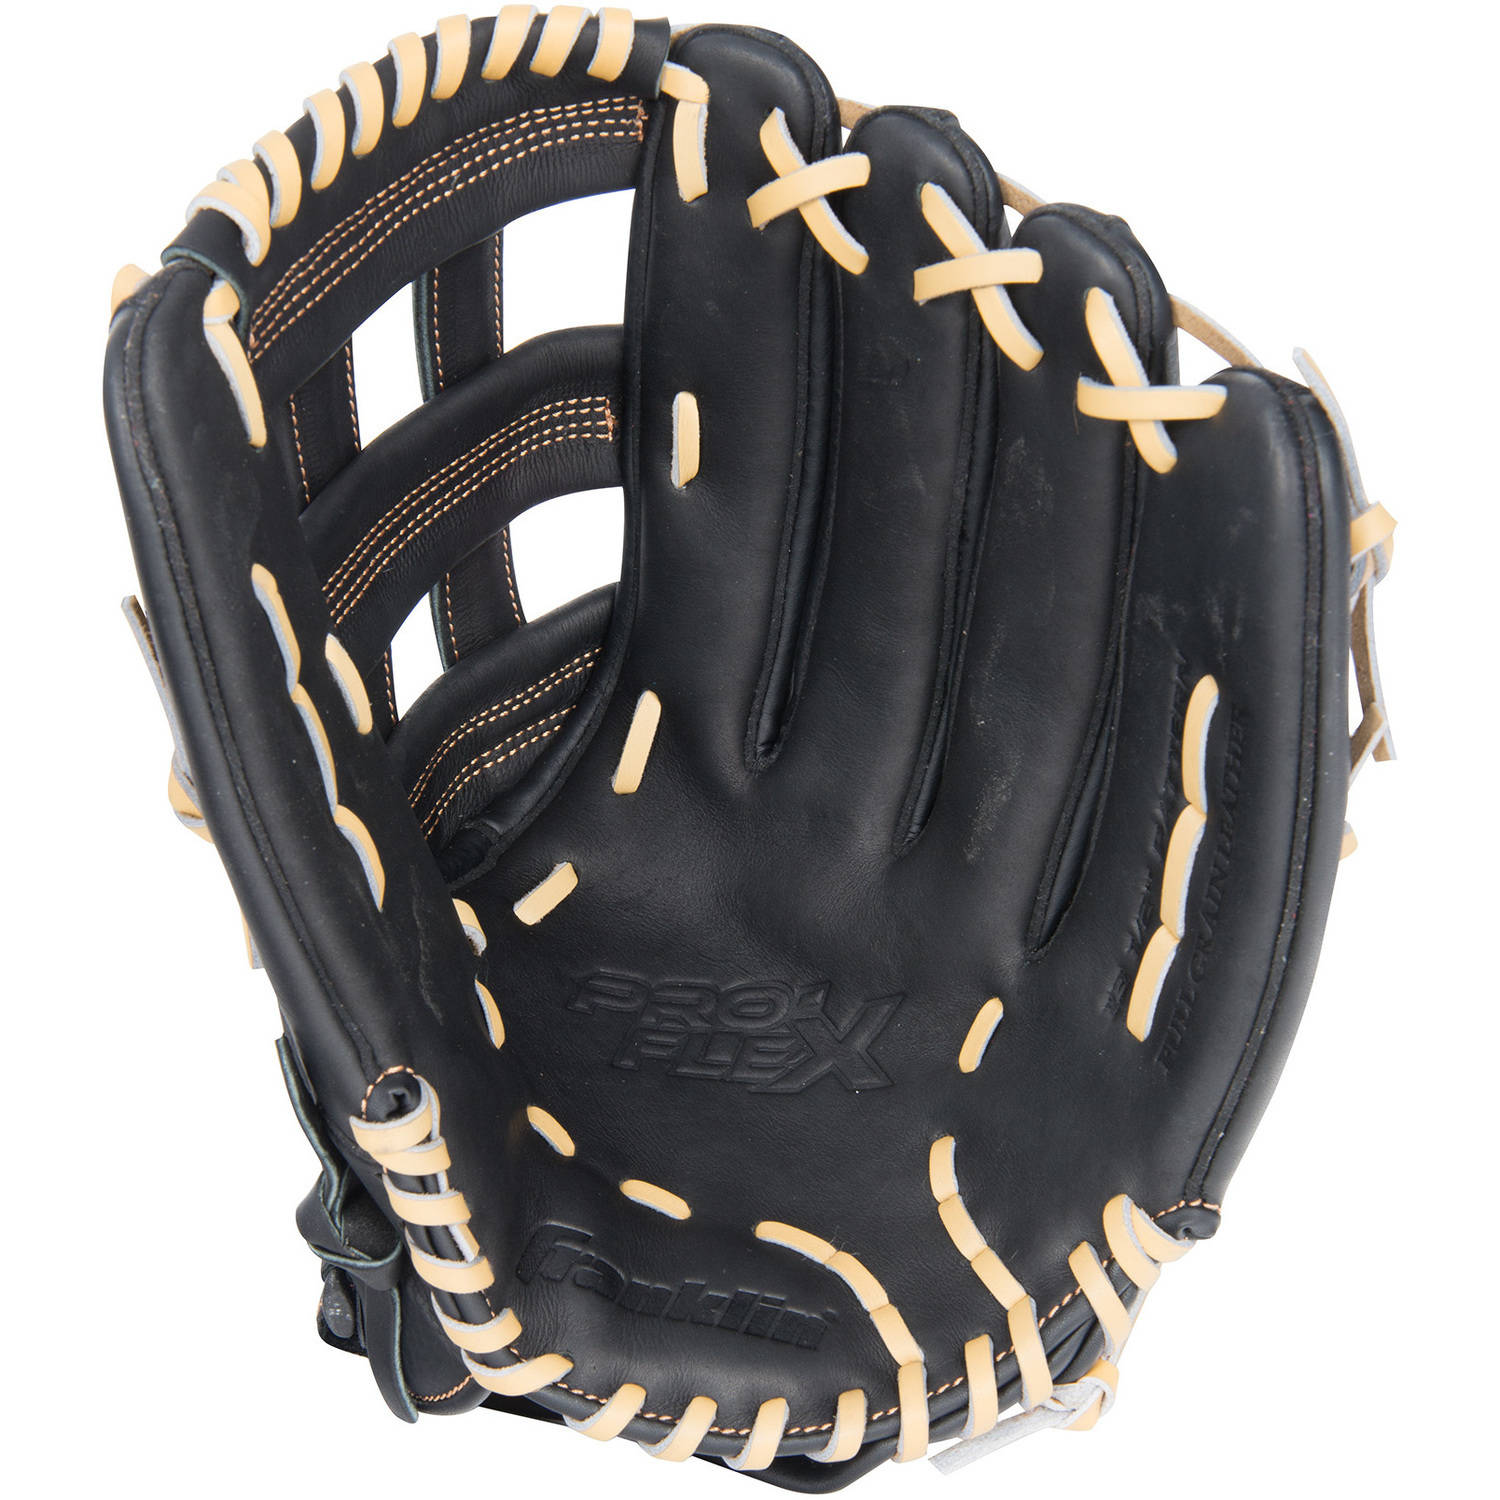 "Franklin Sports 13.5"" Pro Flex Hybrid Series Baseball Glove Left-Handed Thrower, Black/Camel"